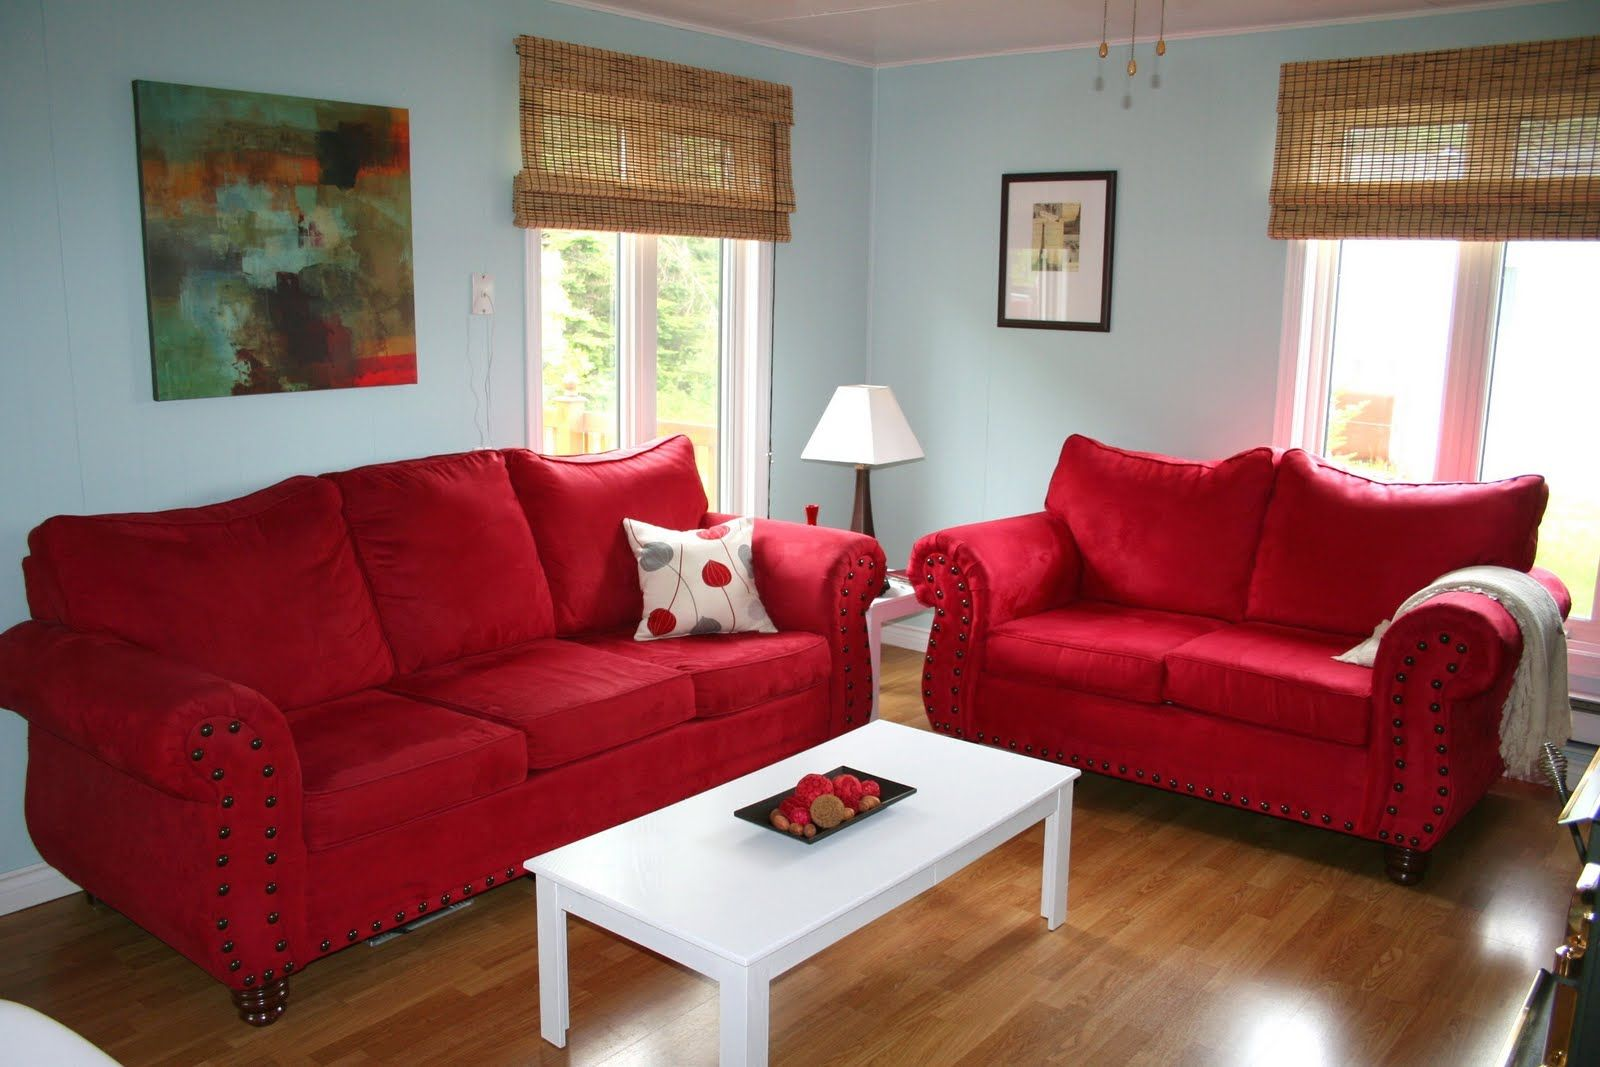 Enthralling Light Blue Walls Living Room Of Rooms With Red Couch ...